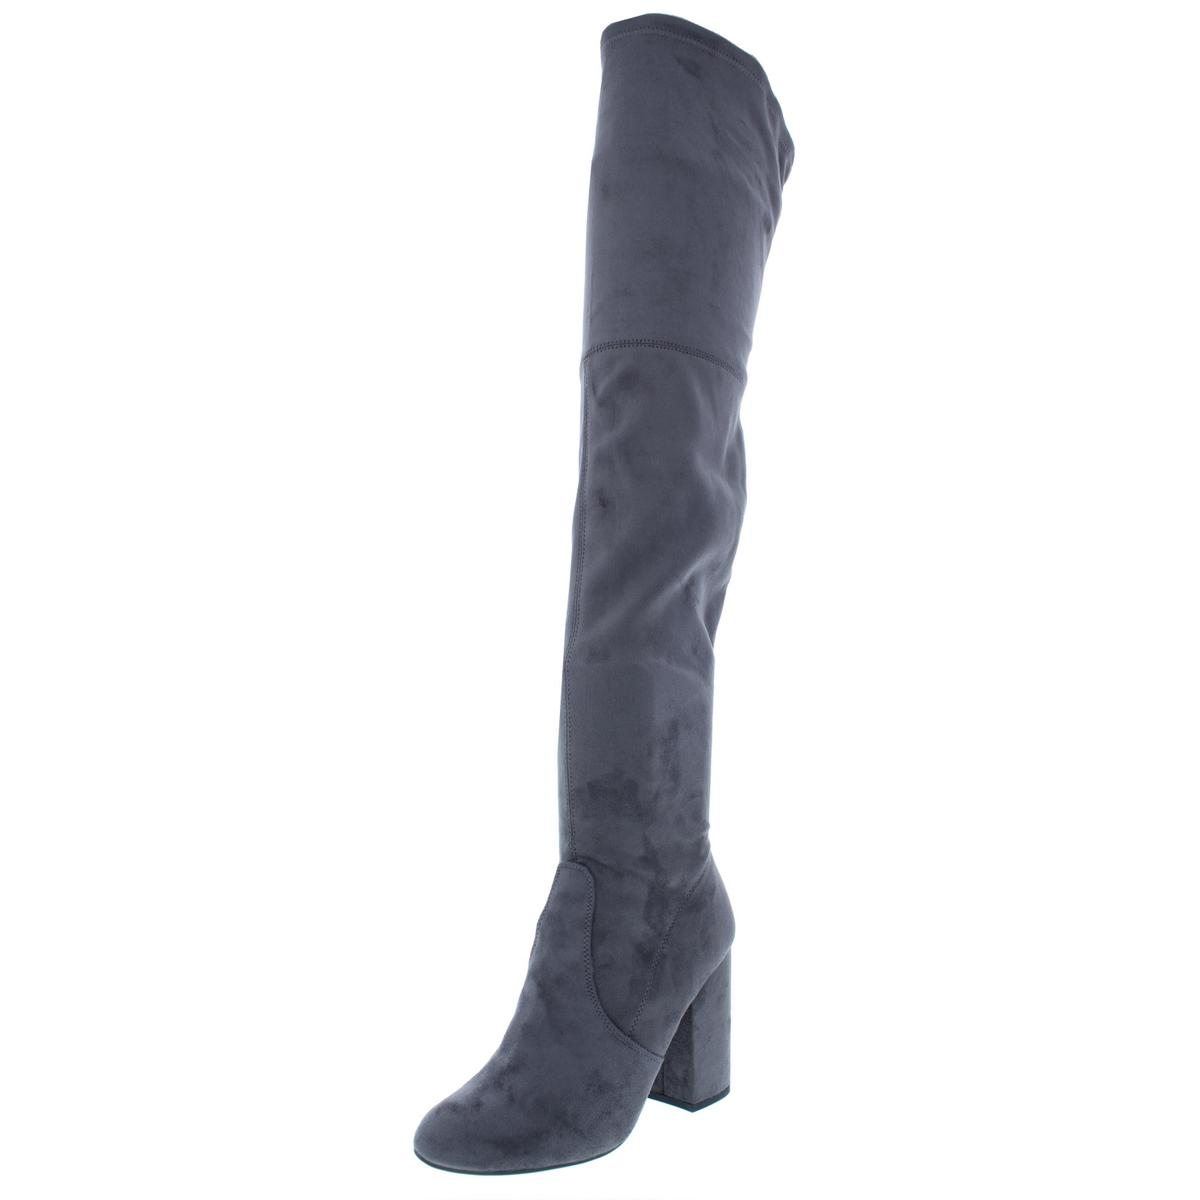 Steve-Madden-Womens-Norri-Stretch-Tall-Block-Thigh-High-Boots-Shoes-BHFO-9928